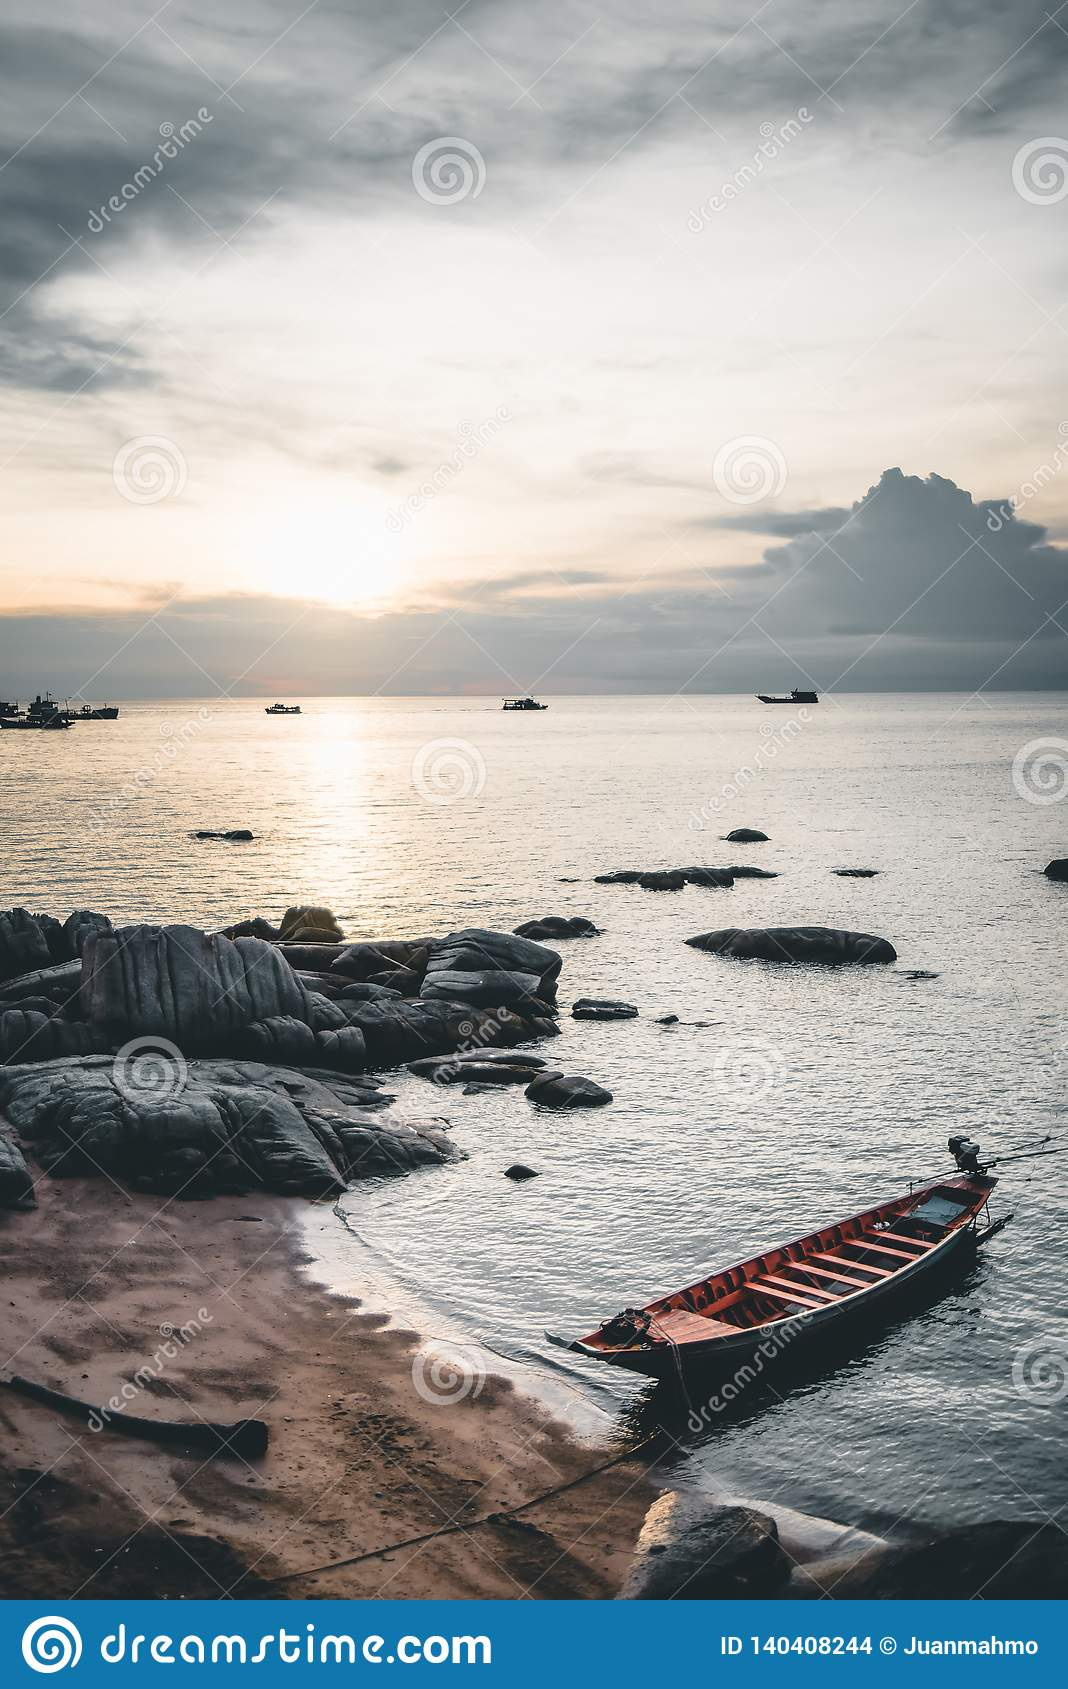 Spectacular sunset on a koh-tao beach thailand with a moored boat